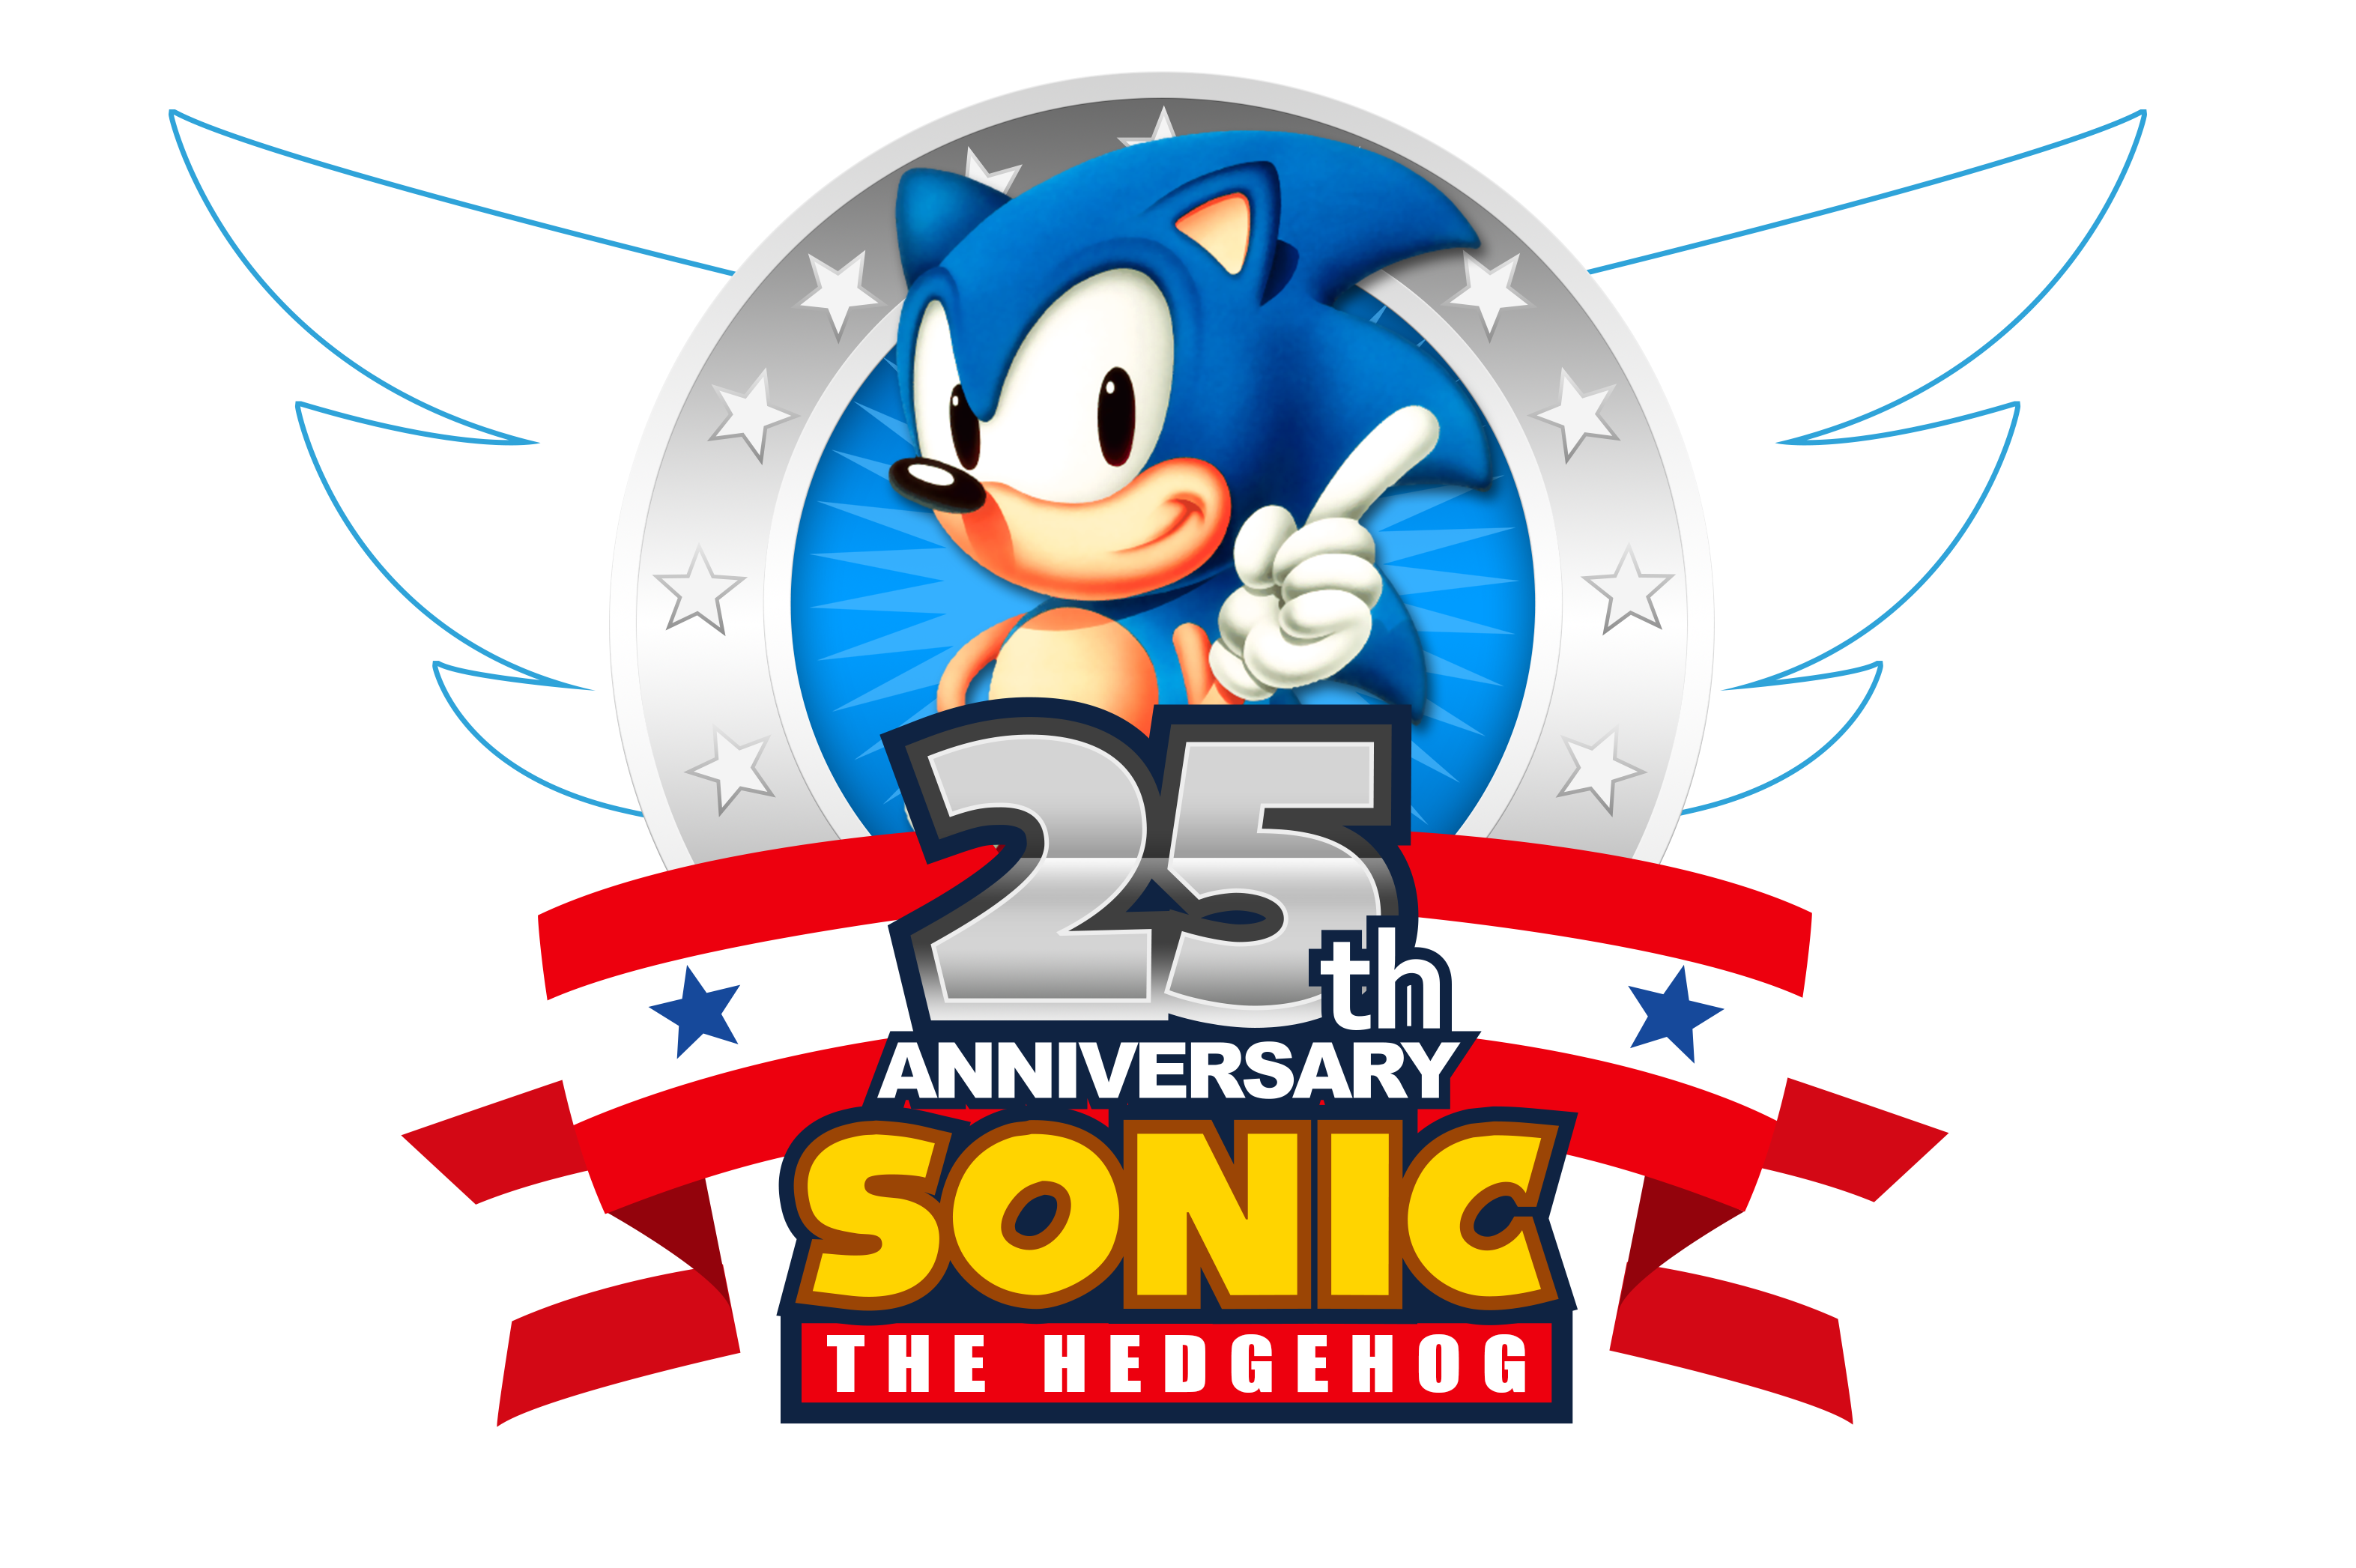 sonic s 25th anniversary 2016 logo  updated  by nuryrush 25 Anniversary Logo 25th Anniversary Seal